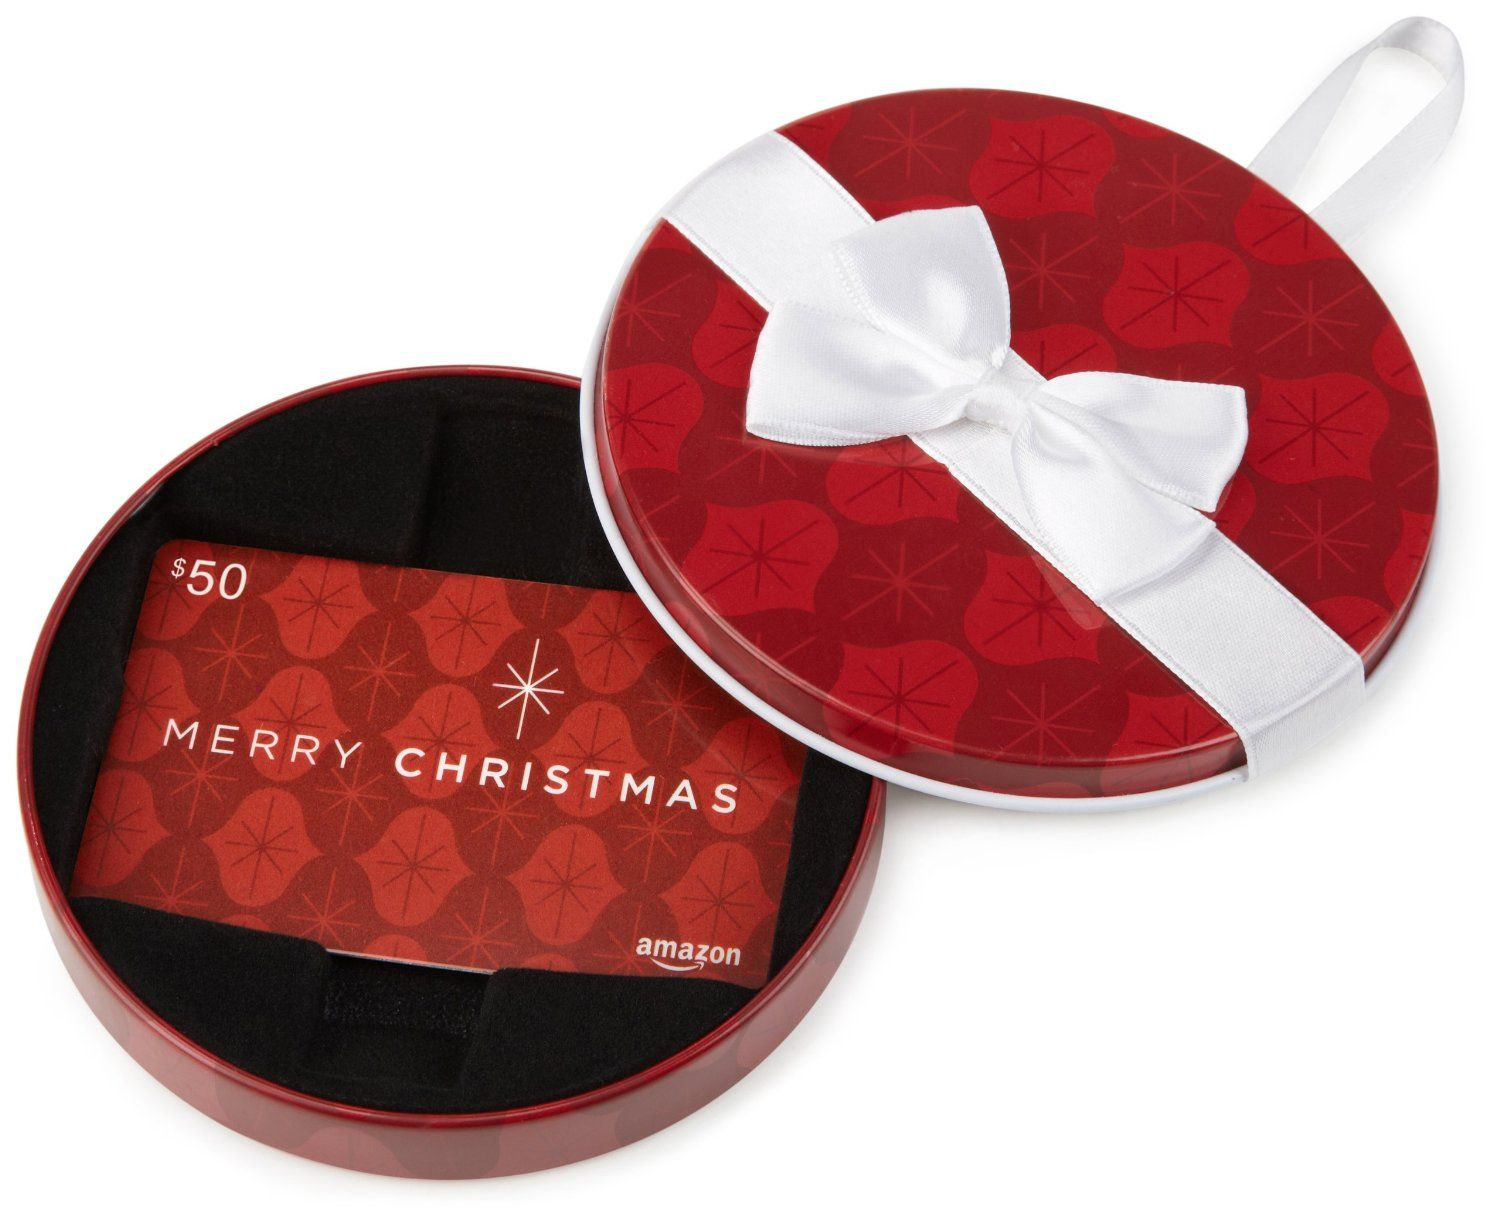 Gift Card in a Ornament Tin (Merry Christmas Card Design)